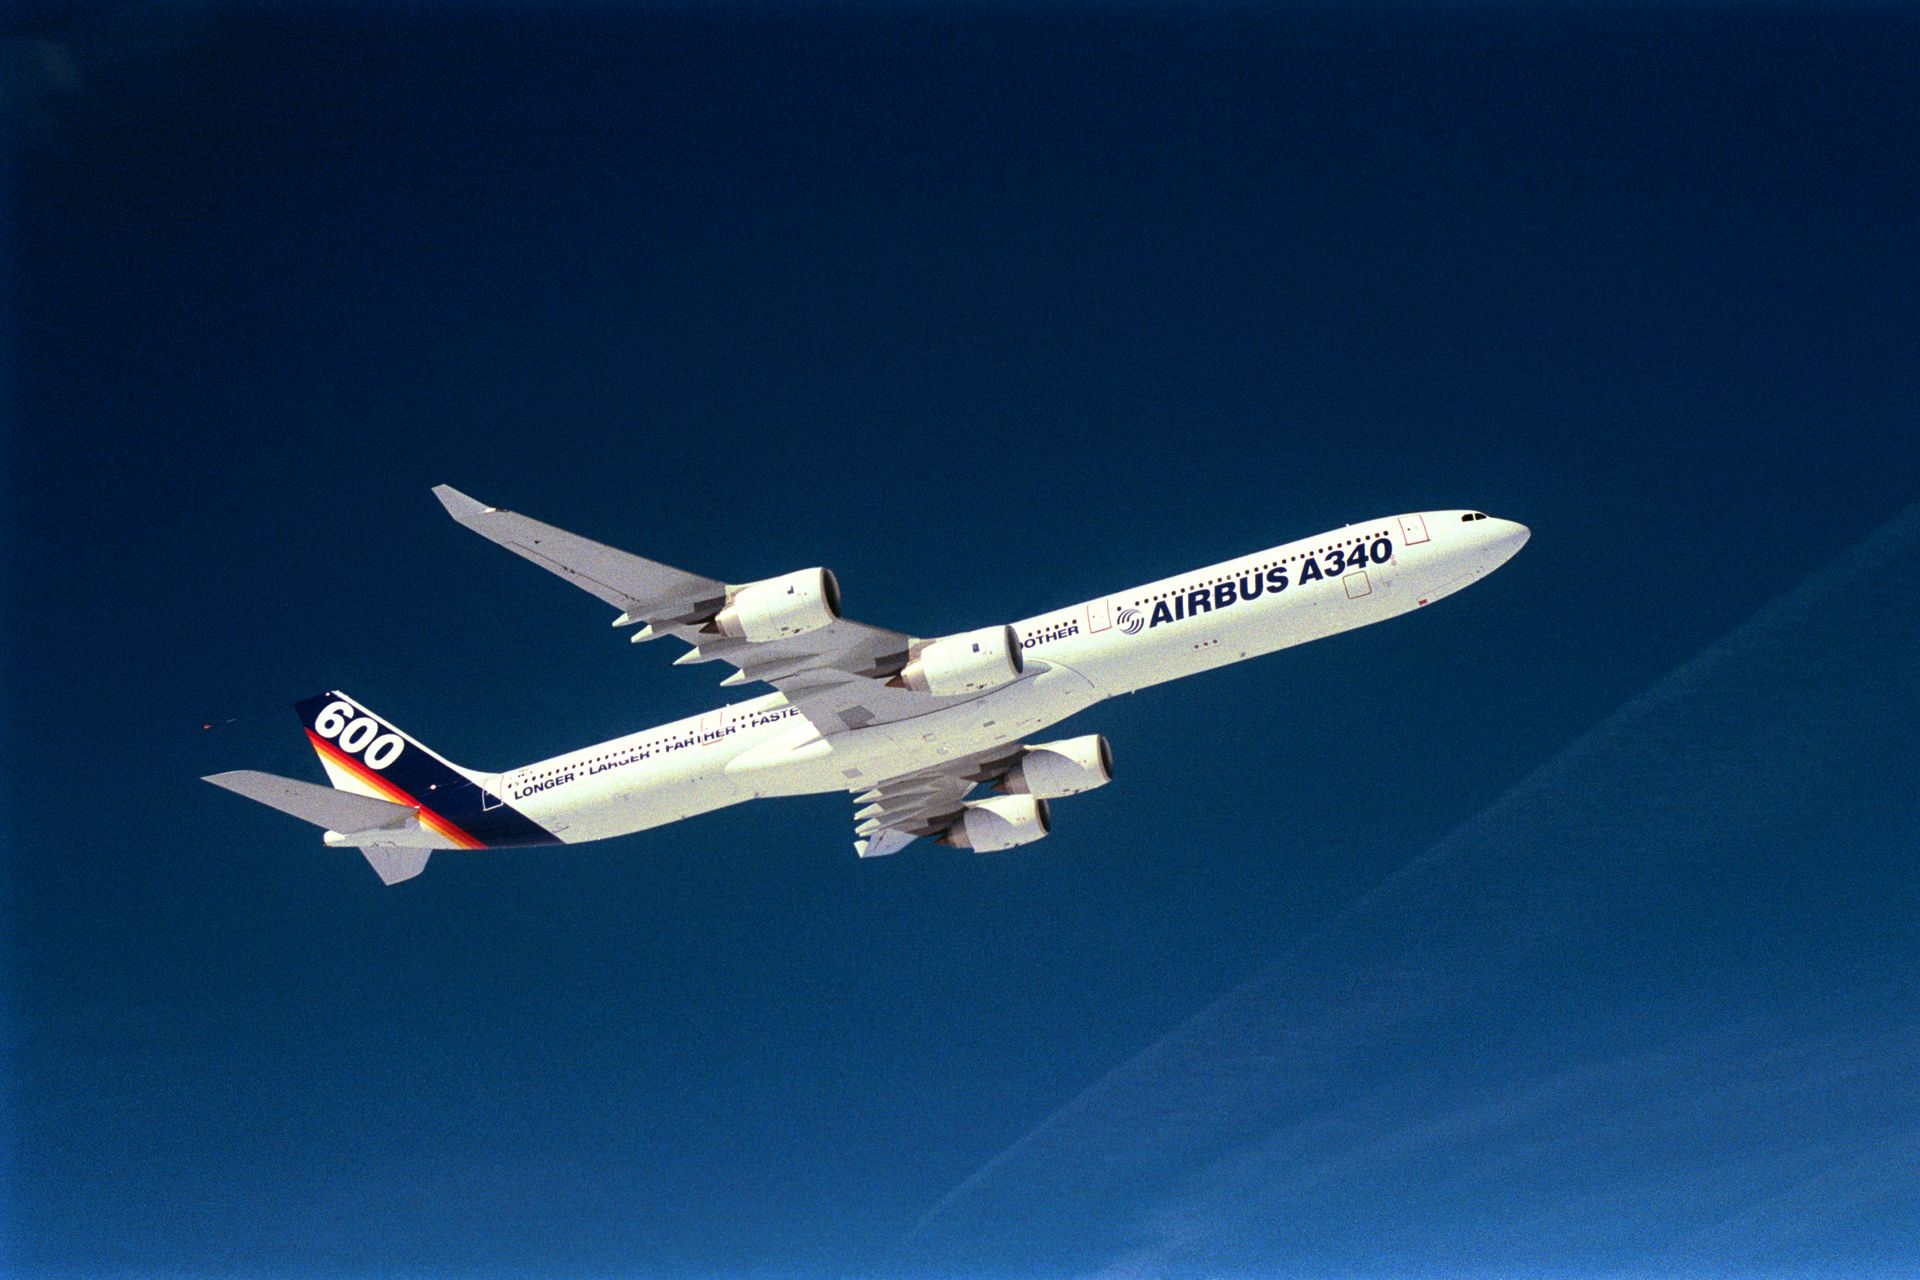 A340-600  Airbus first flight